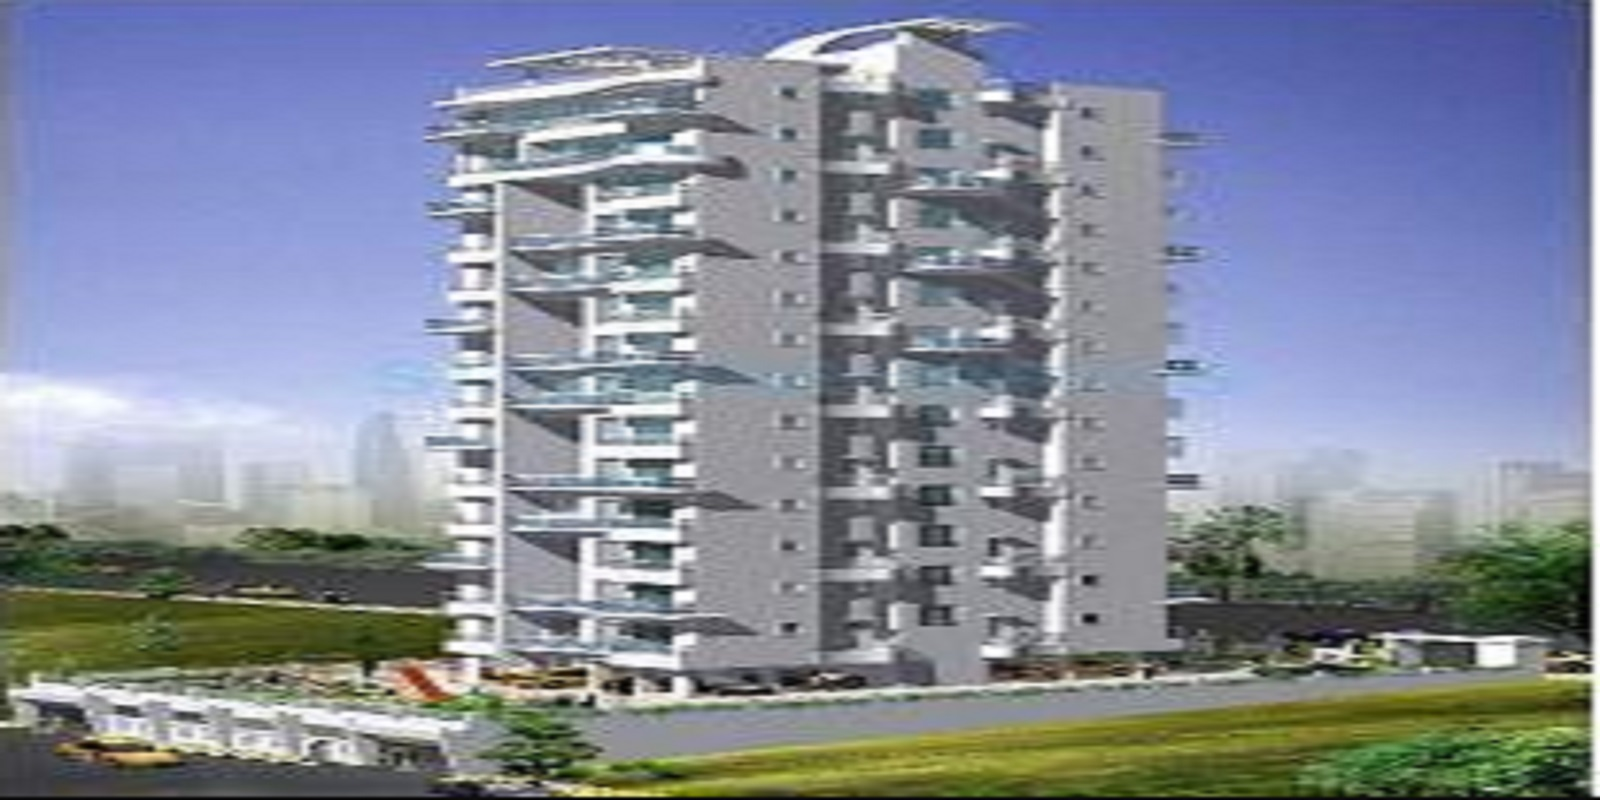 akshar siddhi heights project large image3